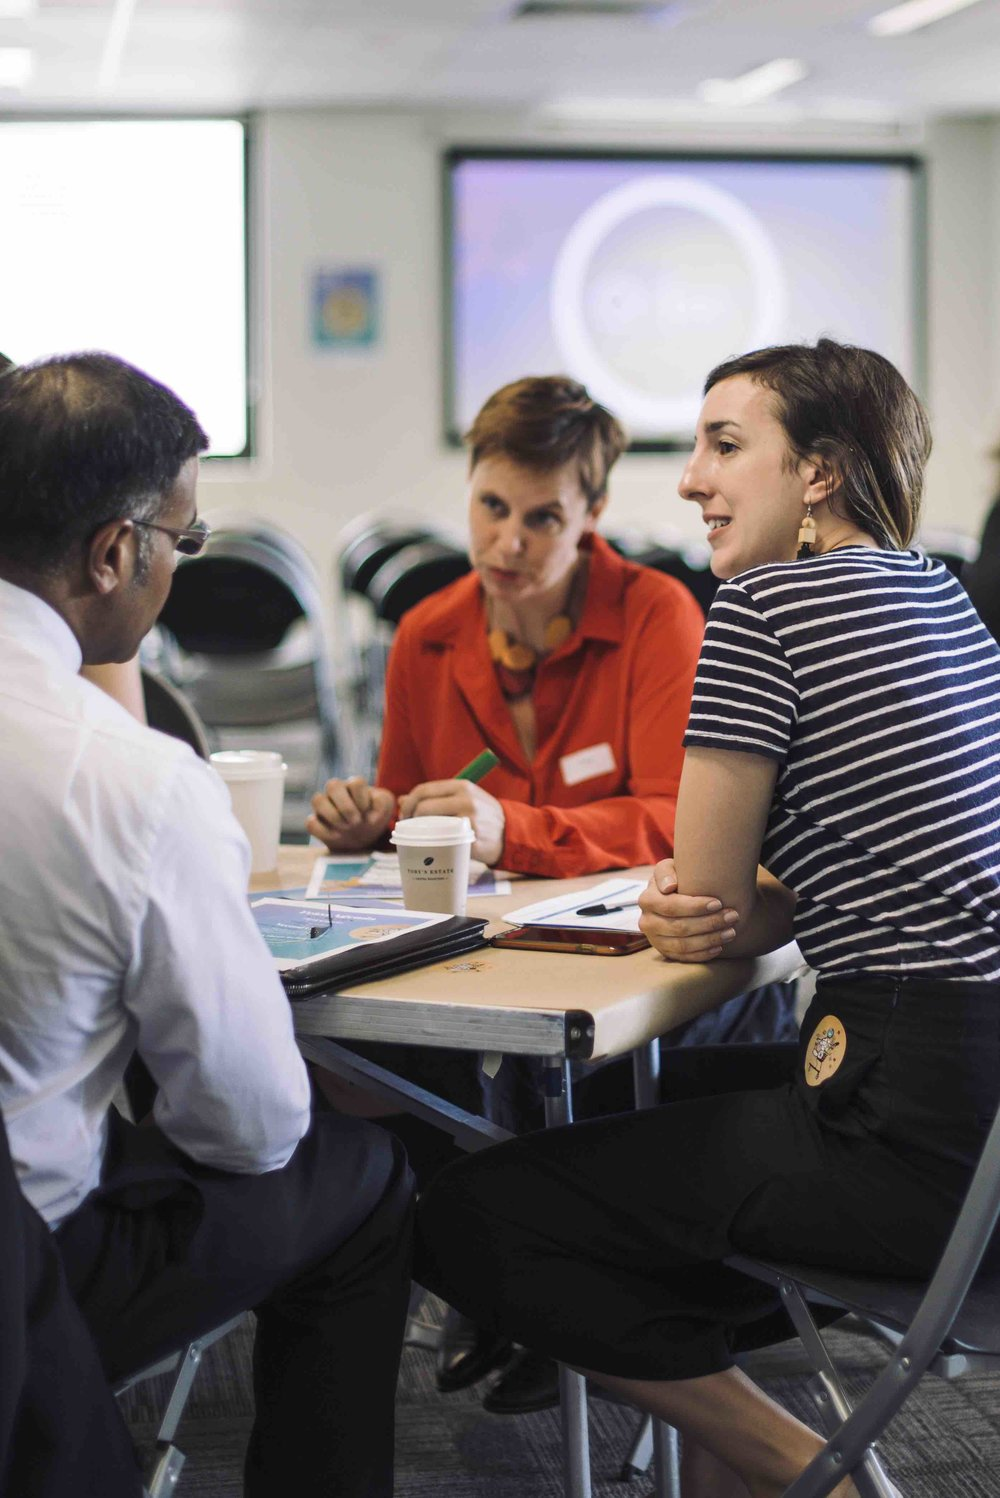 RESILIENT SYDNEY STAKEHOLDER ENGAGEMENT    City of Sydney   We worked with  JOC Consulting  to plan, facilitate and report on creative  ...more